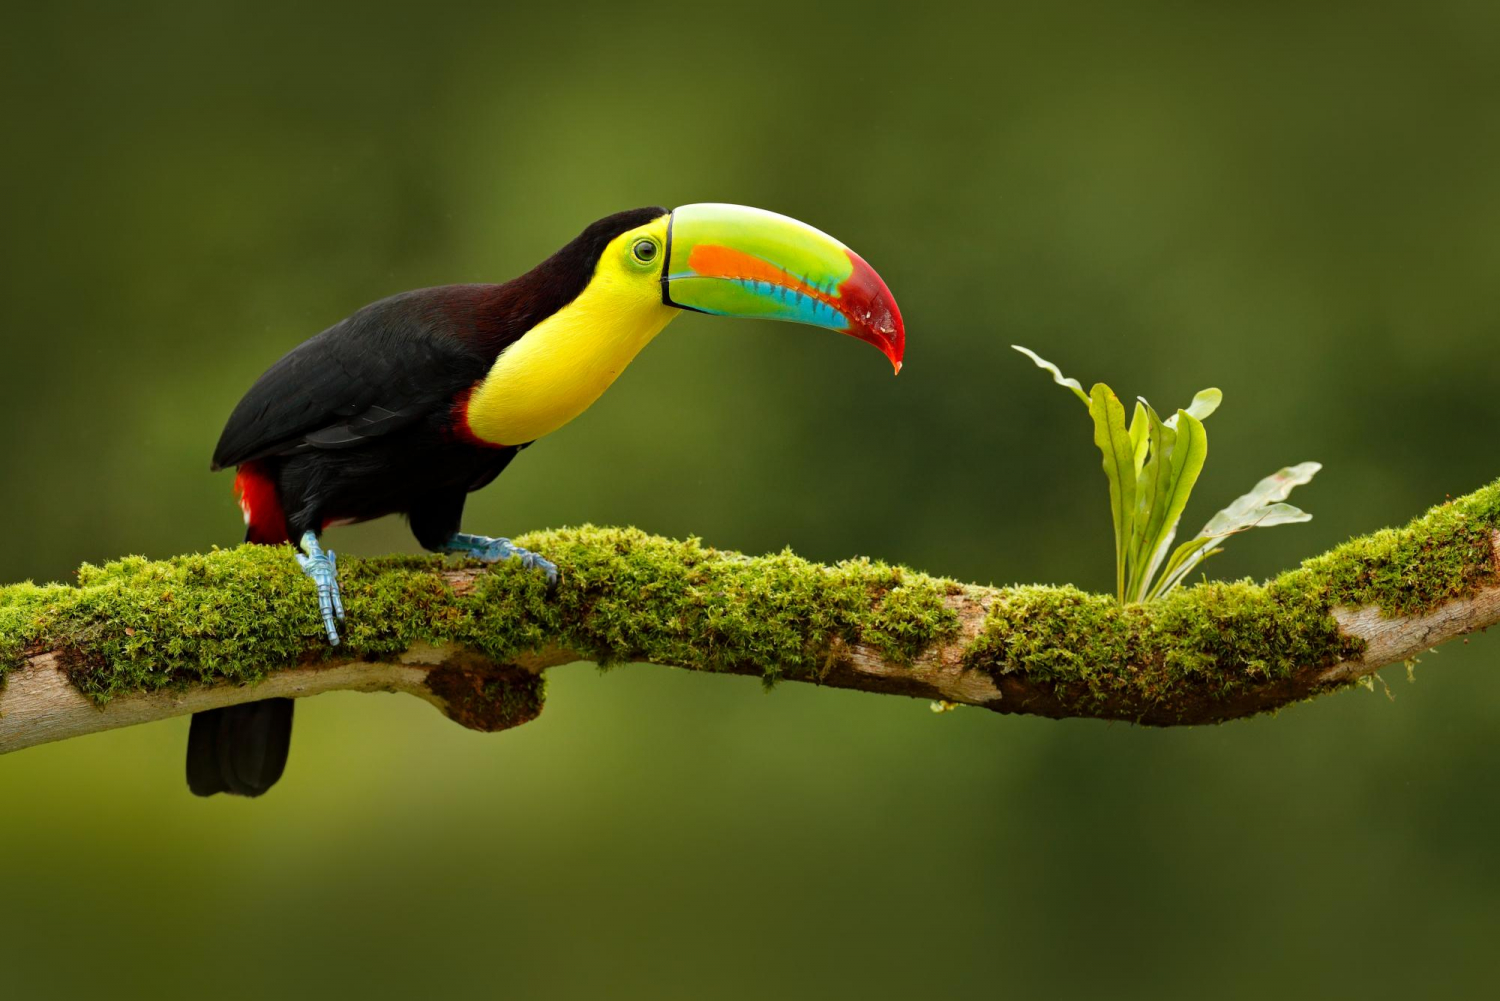 Keel-billed,Toucan,,Ramphastos,Sulfuratus,,Bird,With,Big,Bill,,Sitting,On